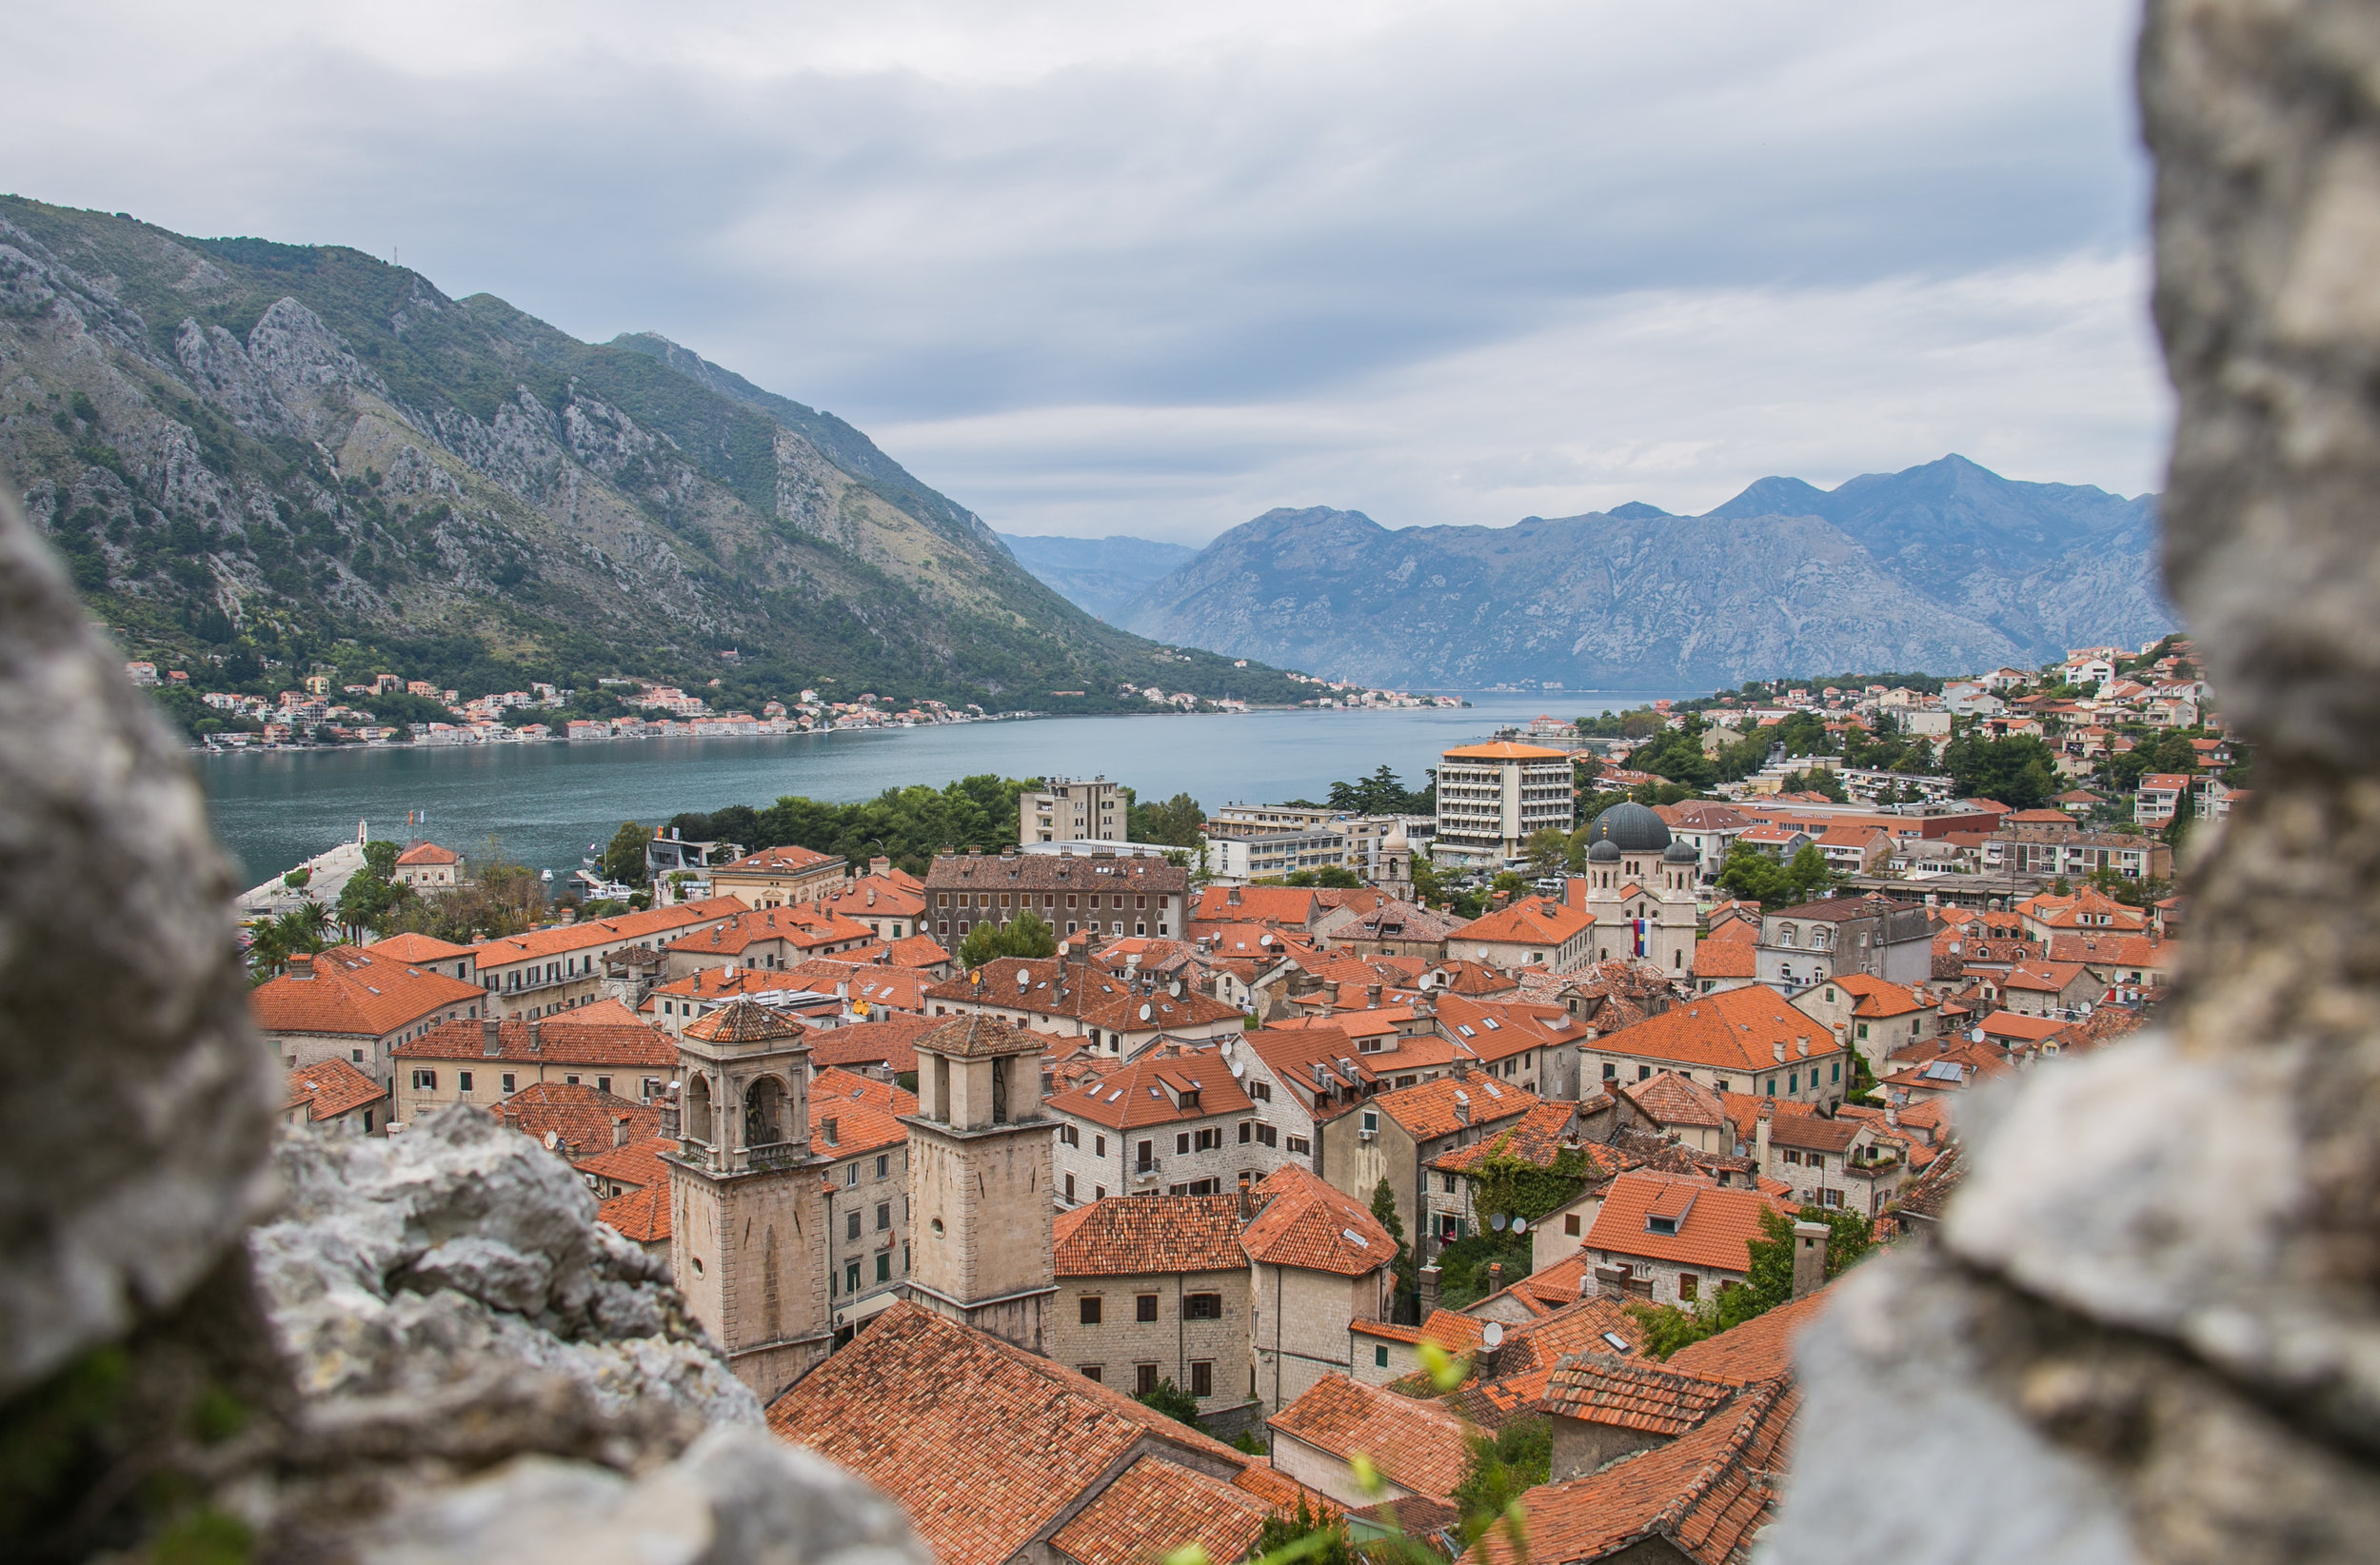 Old City Kotor, Montenegro